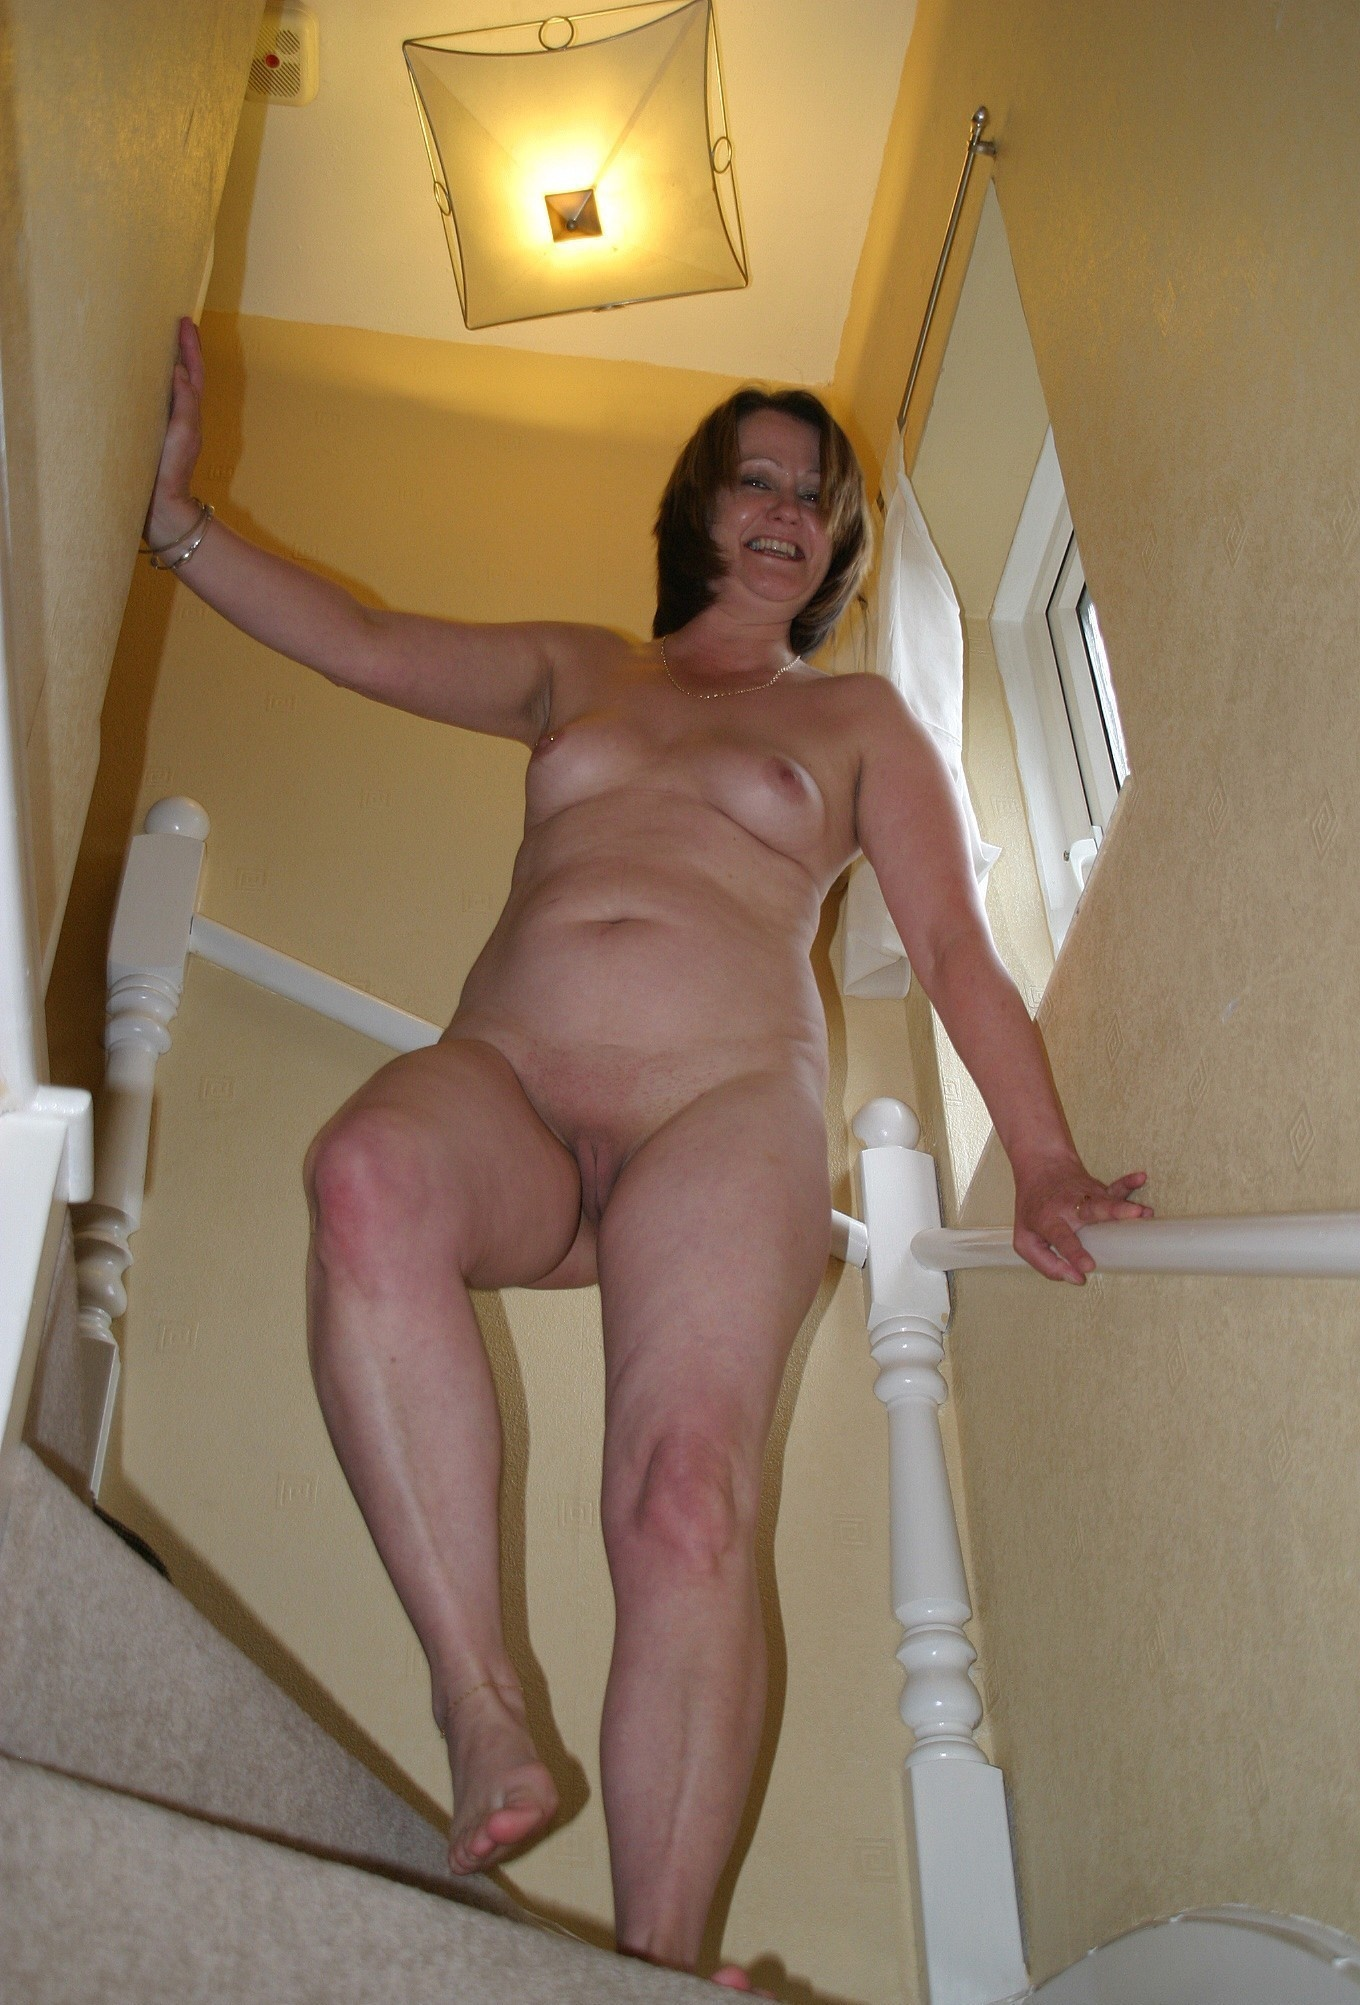 Mature Milf Mom Mommy Olderwomen Amateur Wife Subperspective Perspective Pussy Cunt Nude Stairs Staircase Knee Legs Older